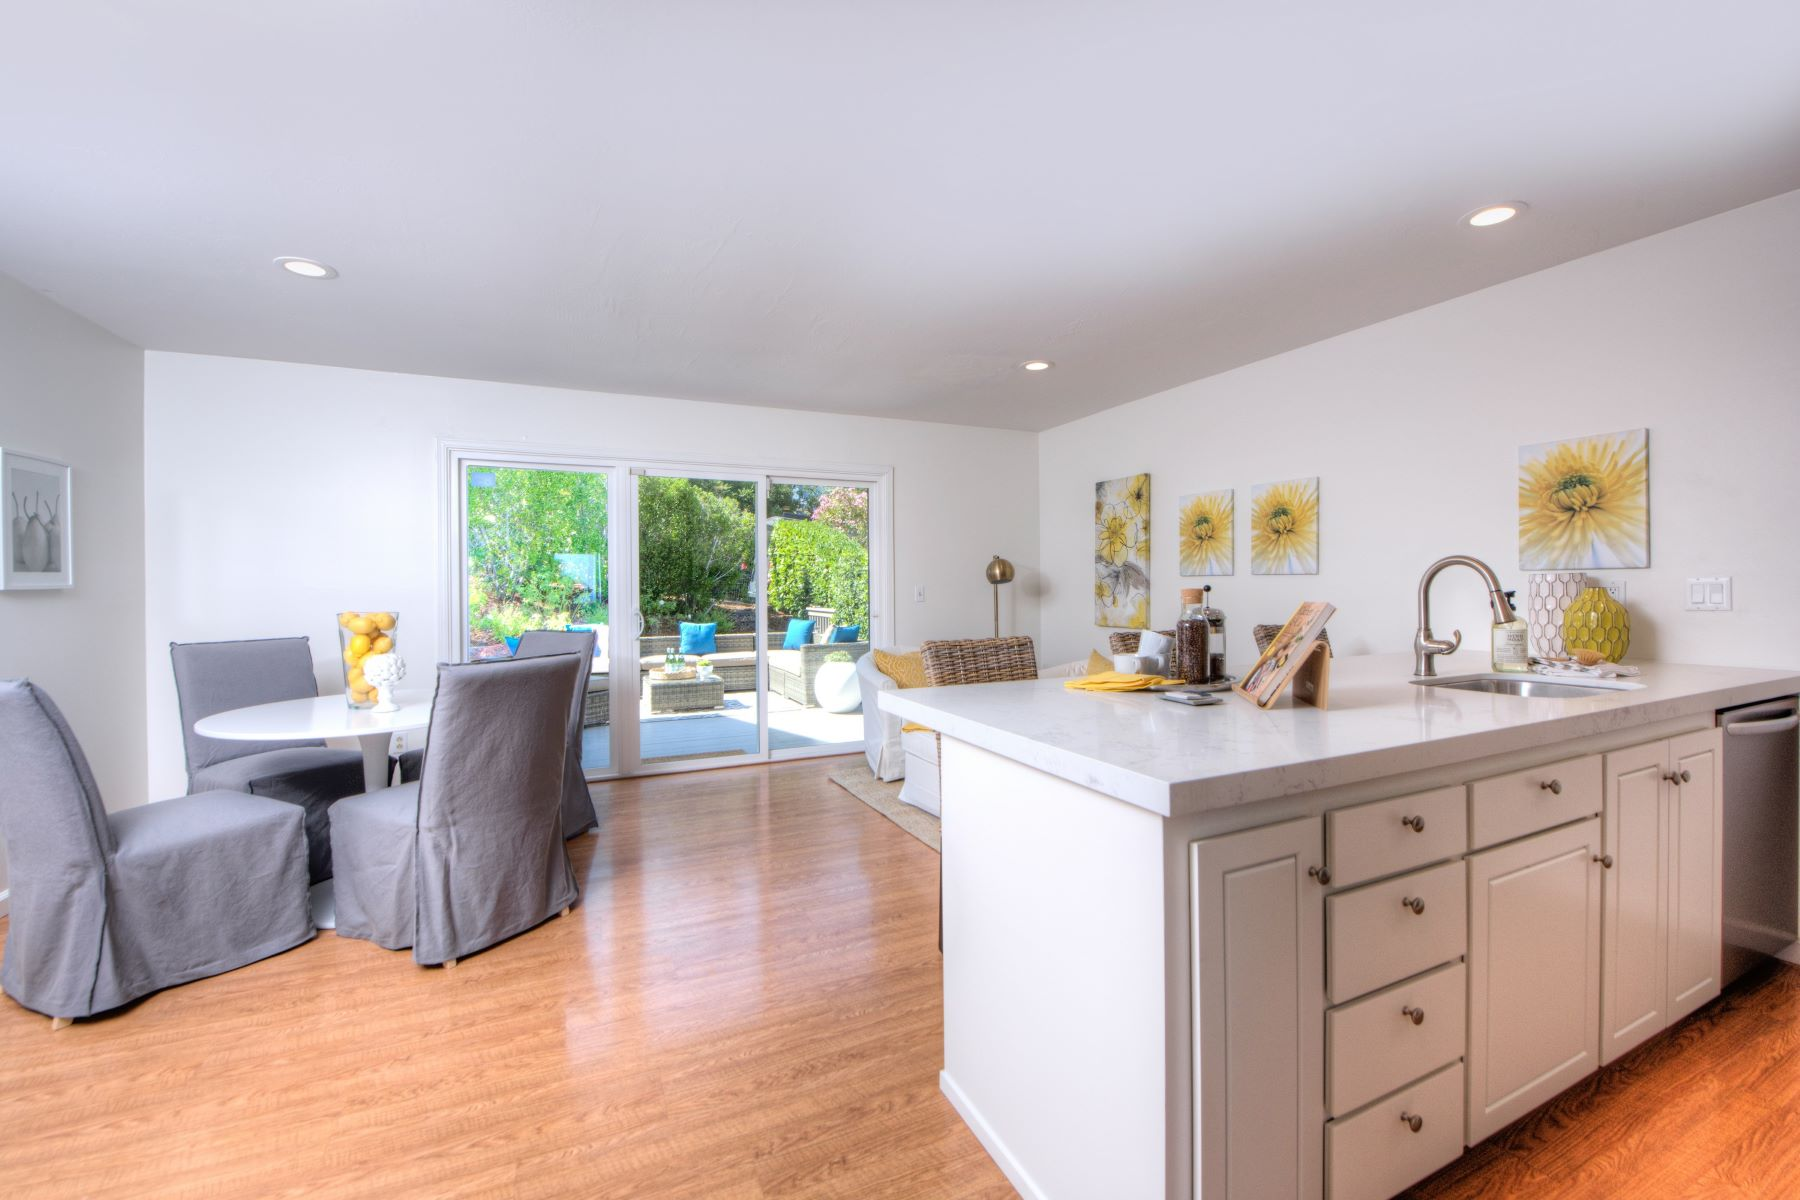 Additional photo for property listing at Remodeled Sun-Filled Contemporary Home with Two-Bridge Bay Views 36 Tampa Drive San Rafael, California 94901 United States